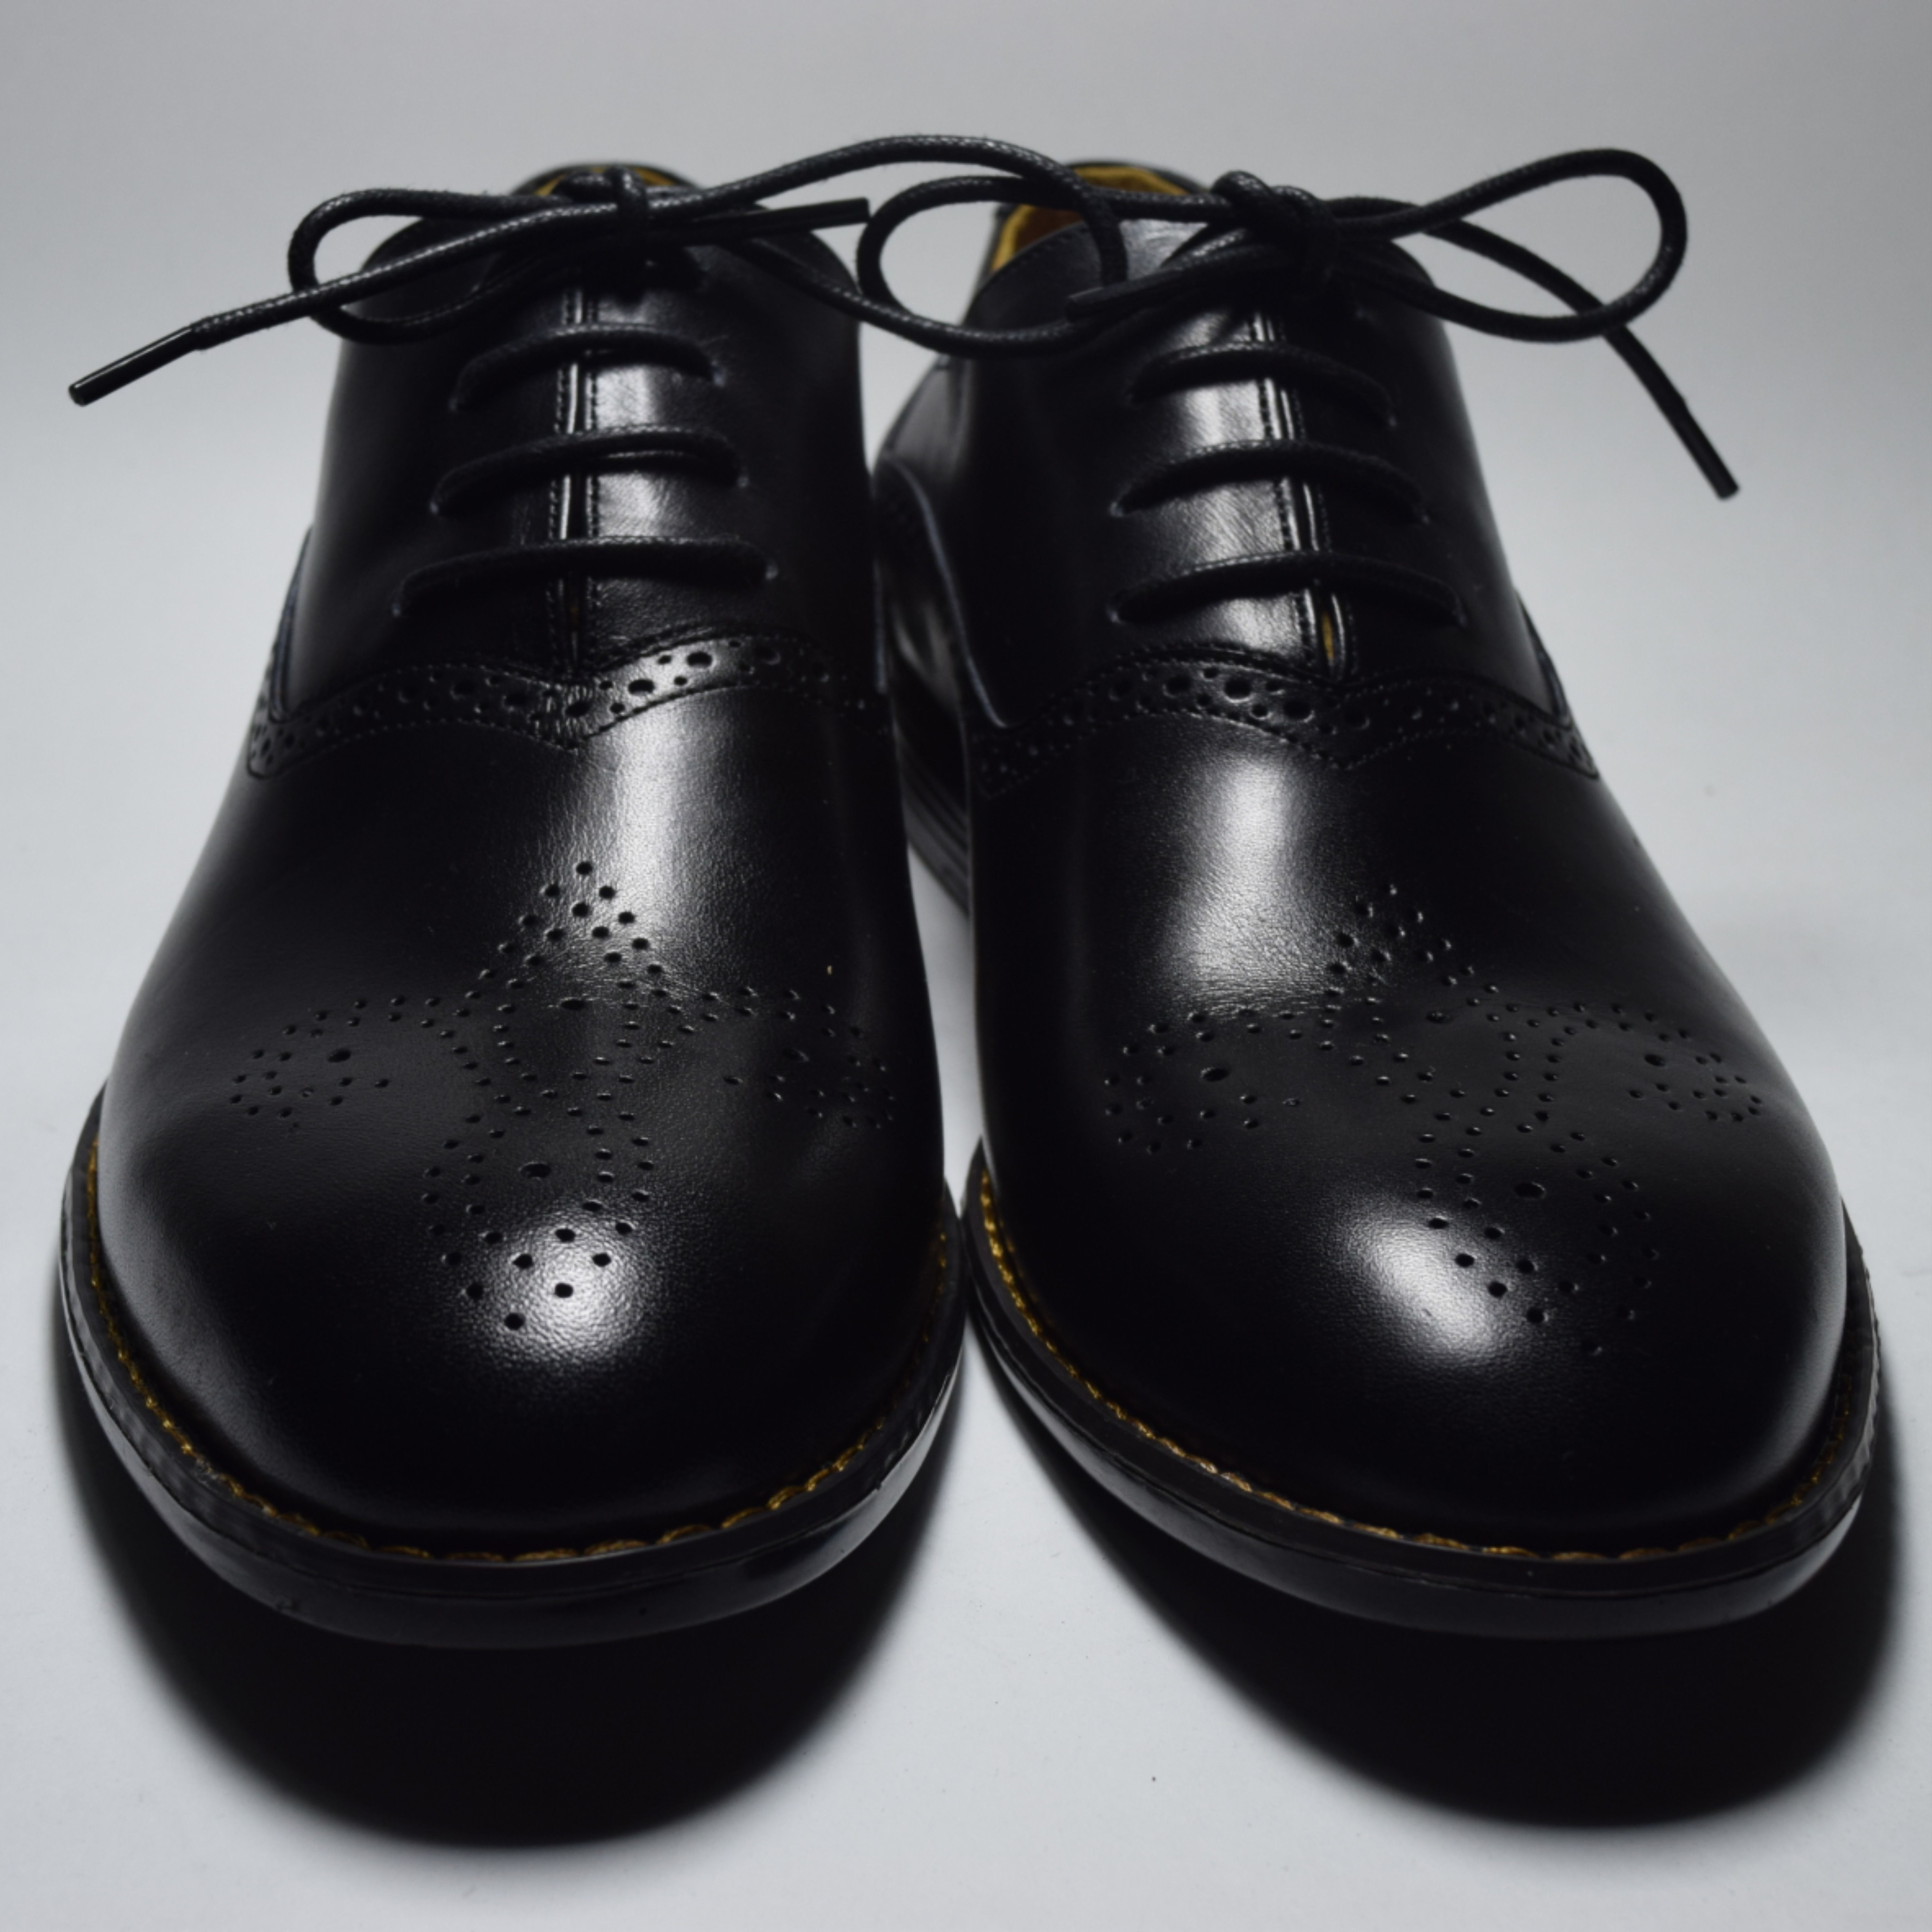 Classic Oxford Handmade Leather Shoes Black Leather Shoe For Men Made To Order Tie Dress Shoes In 2020 Handmade Leather Shoes Leather Shoes Men Black Leather Shoes [ 6000 x 6000 Pixel ]